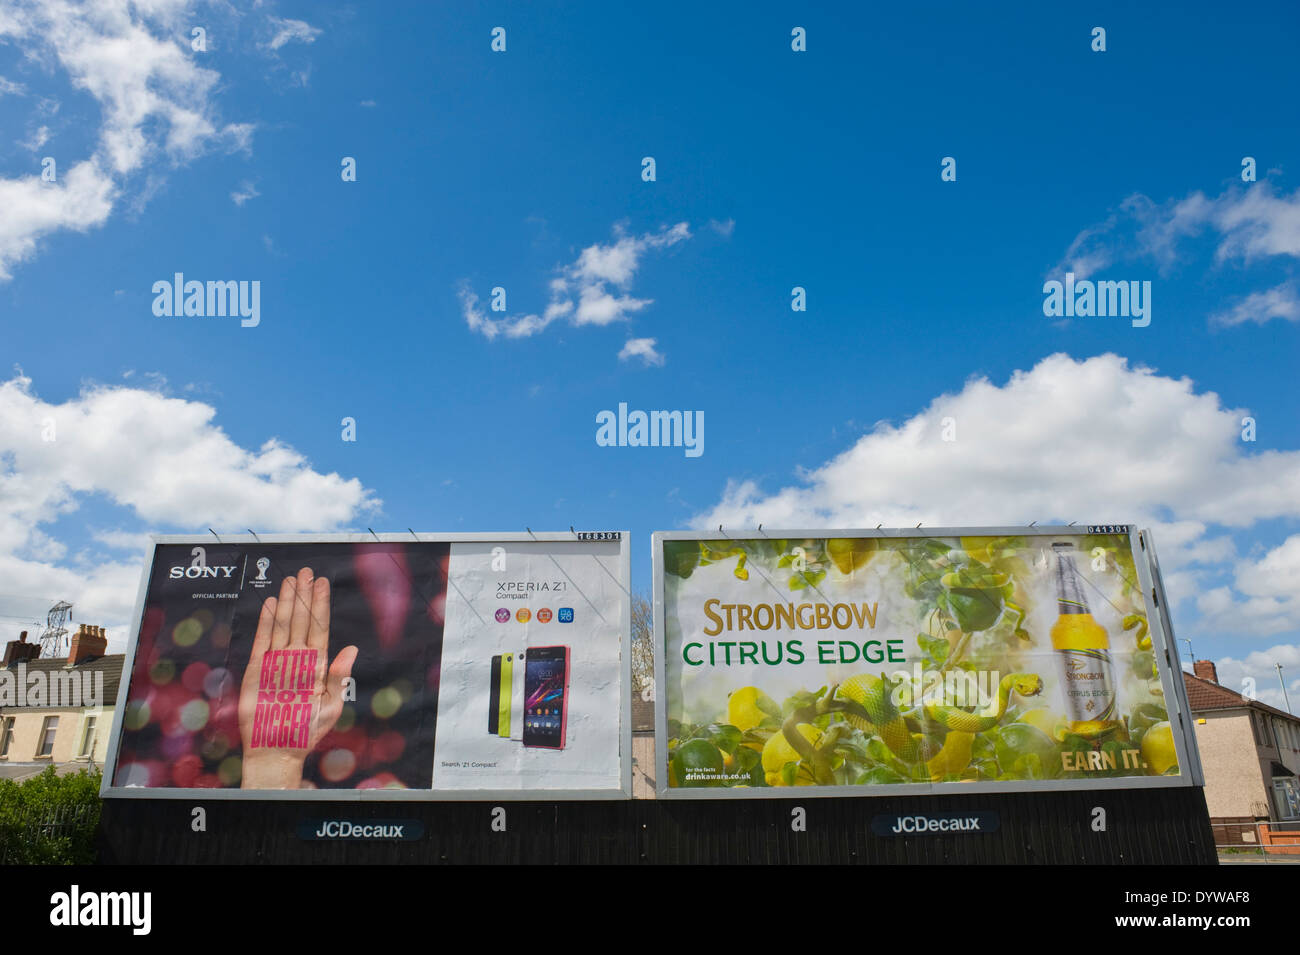 Sony Xperia Z1 smart phone & Bulmer's Strongbow Citrus Edge Cider 48 sheet poster advertising billboards on JCDecaux roadside site in Newport South Wales UK - Stock Image